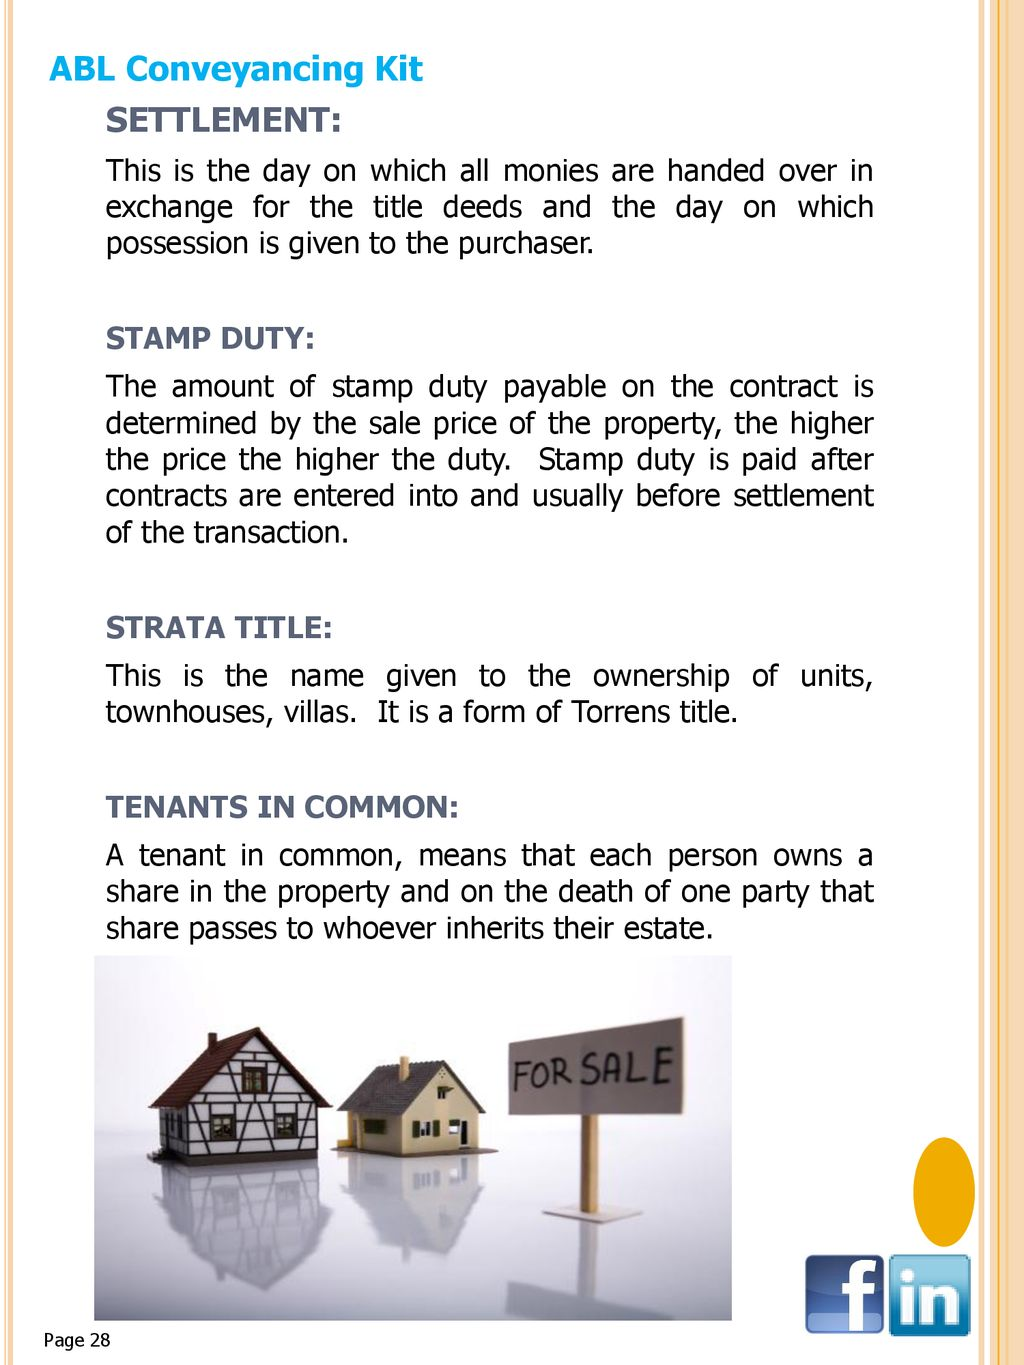 Anderson boemi lawyers ppt download abl conveyancing kit settlement solutioingenieria Images